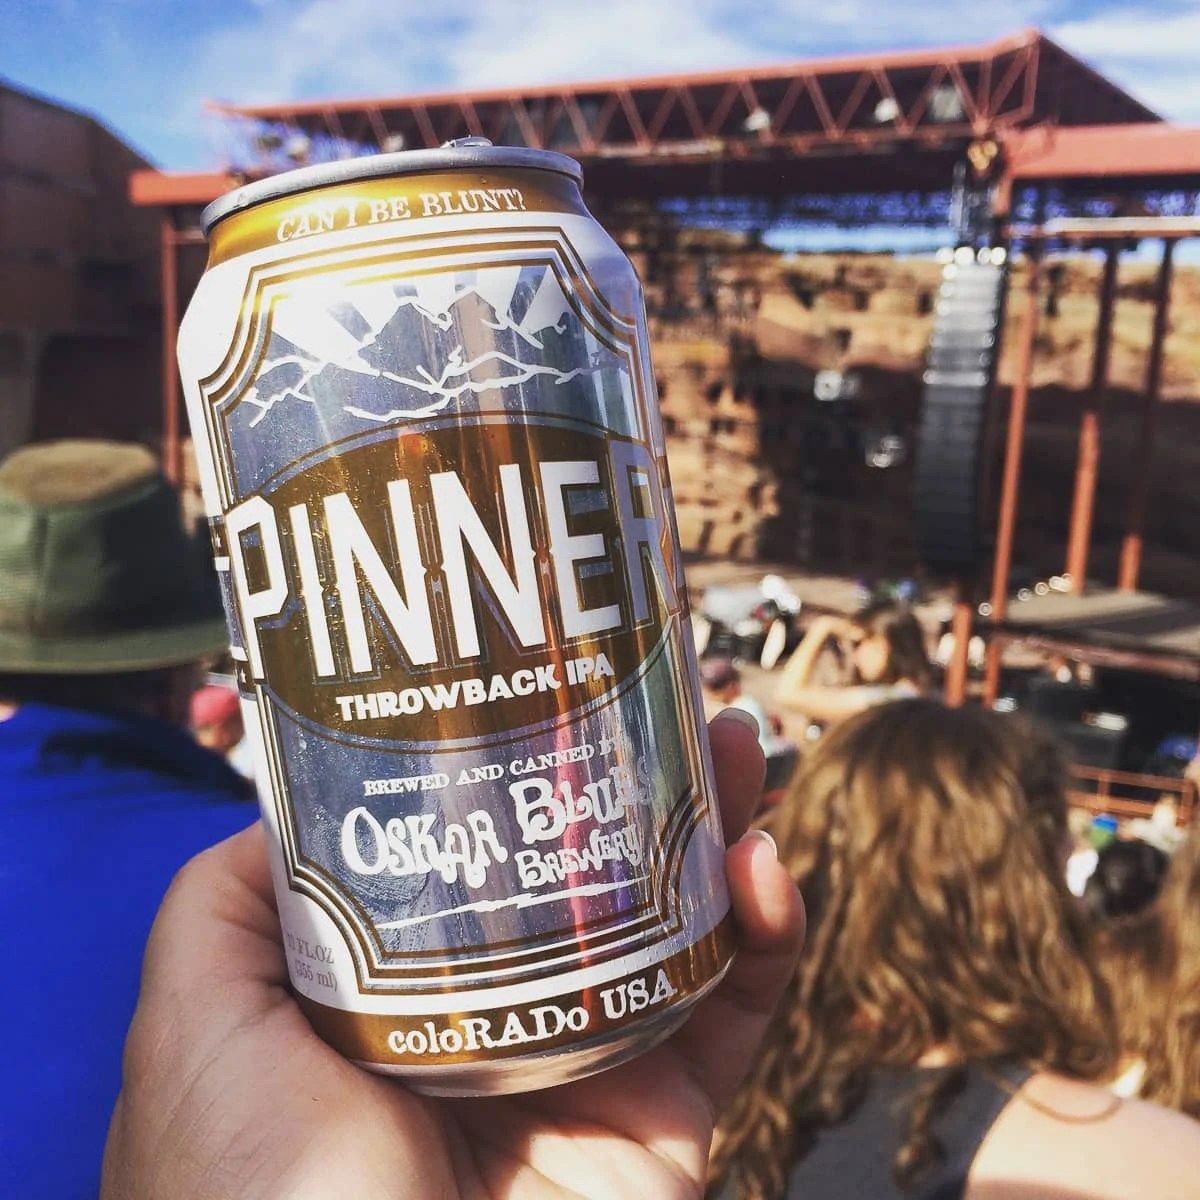 Oskar Blues Pinner IPA at Red Rocks, in Morrison, Colorado